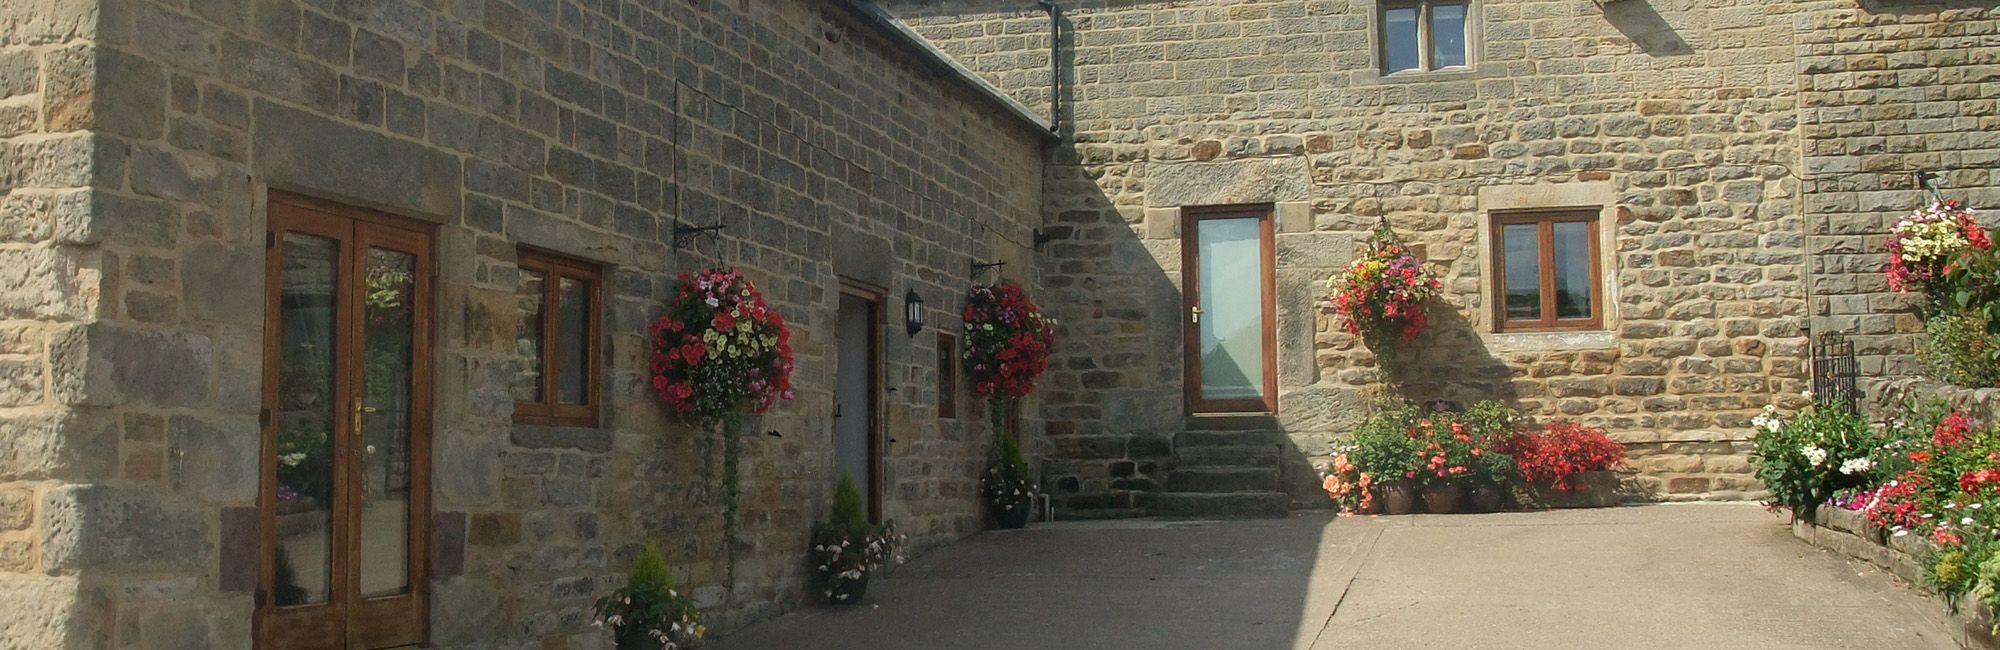 Bed And Breakfast Matlock Park Farm Bed Breakfast Derbyshire Peak District Accommodation